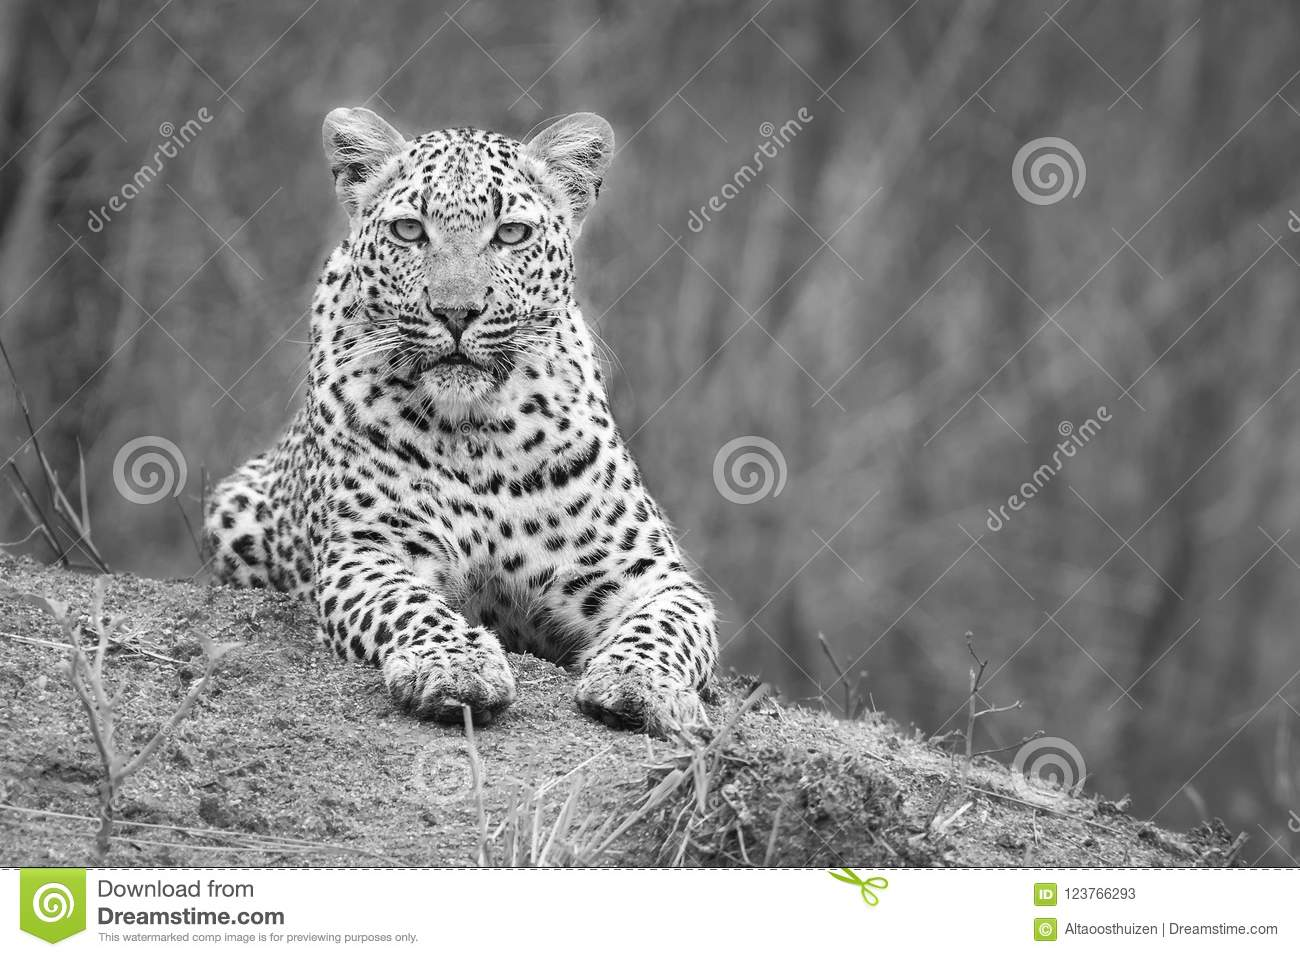 Lone leopard lay down to rest on anthill in nature during daytime artistic conversion